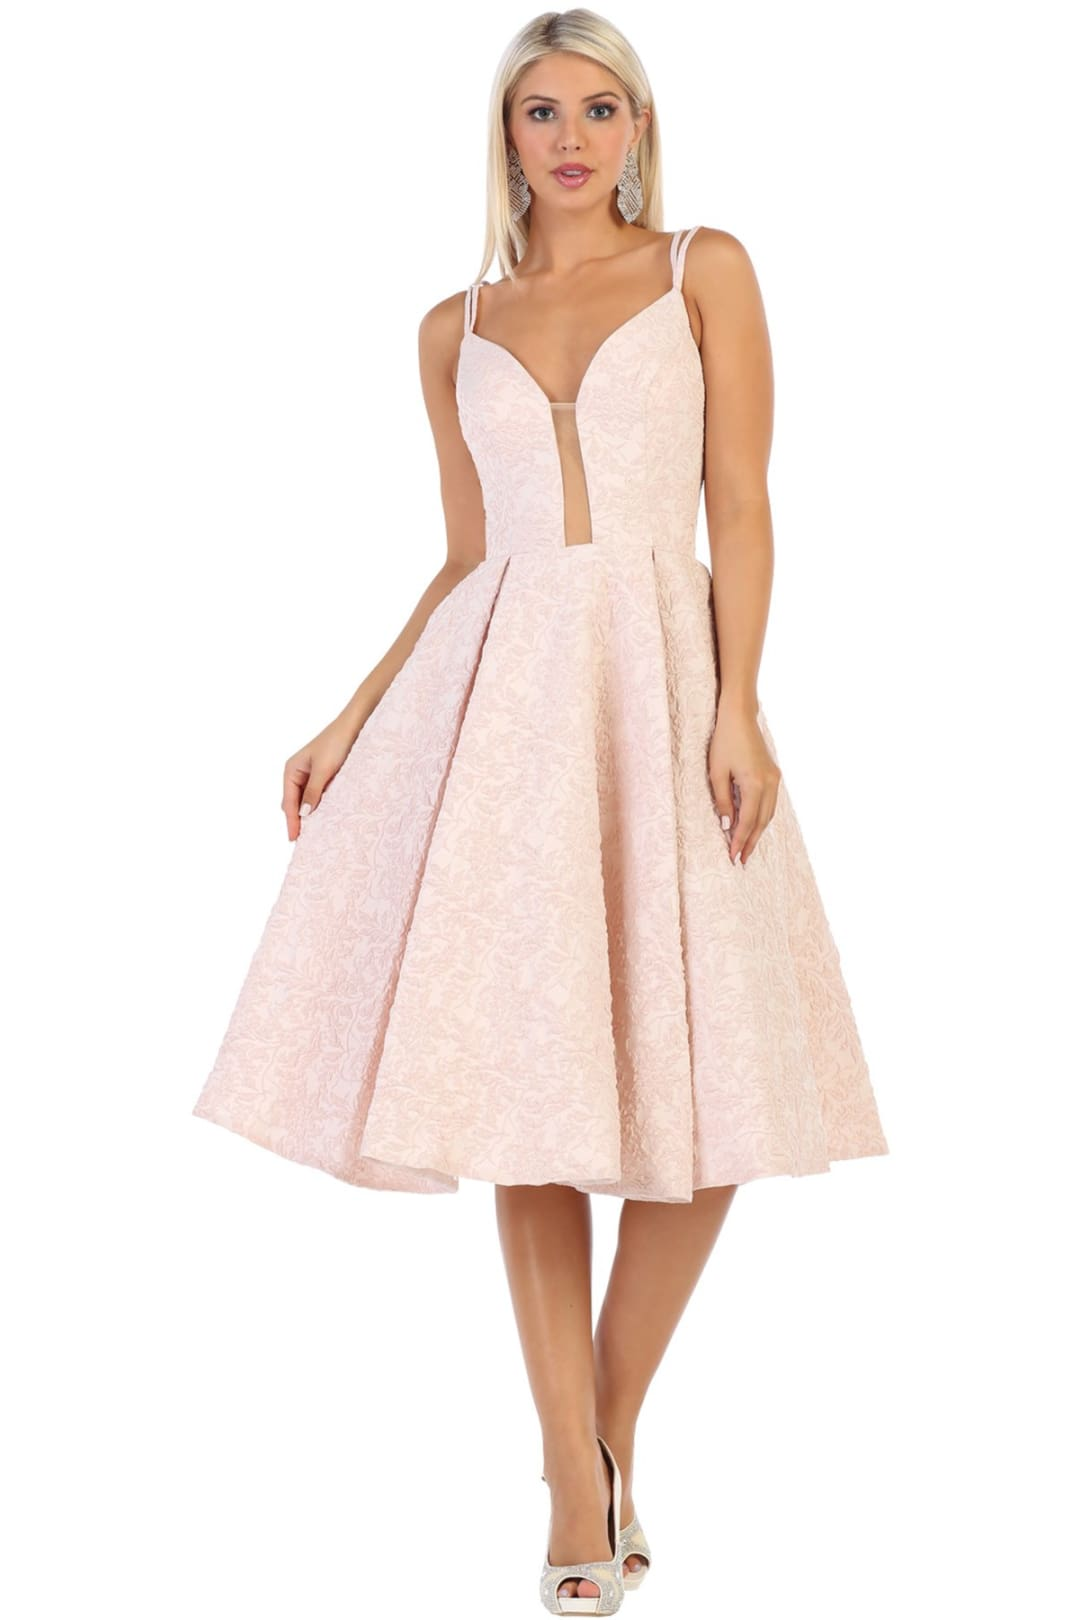 Cute Short Prom Dress - Blush / 4